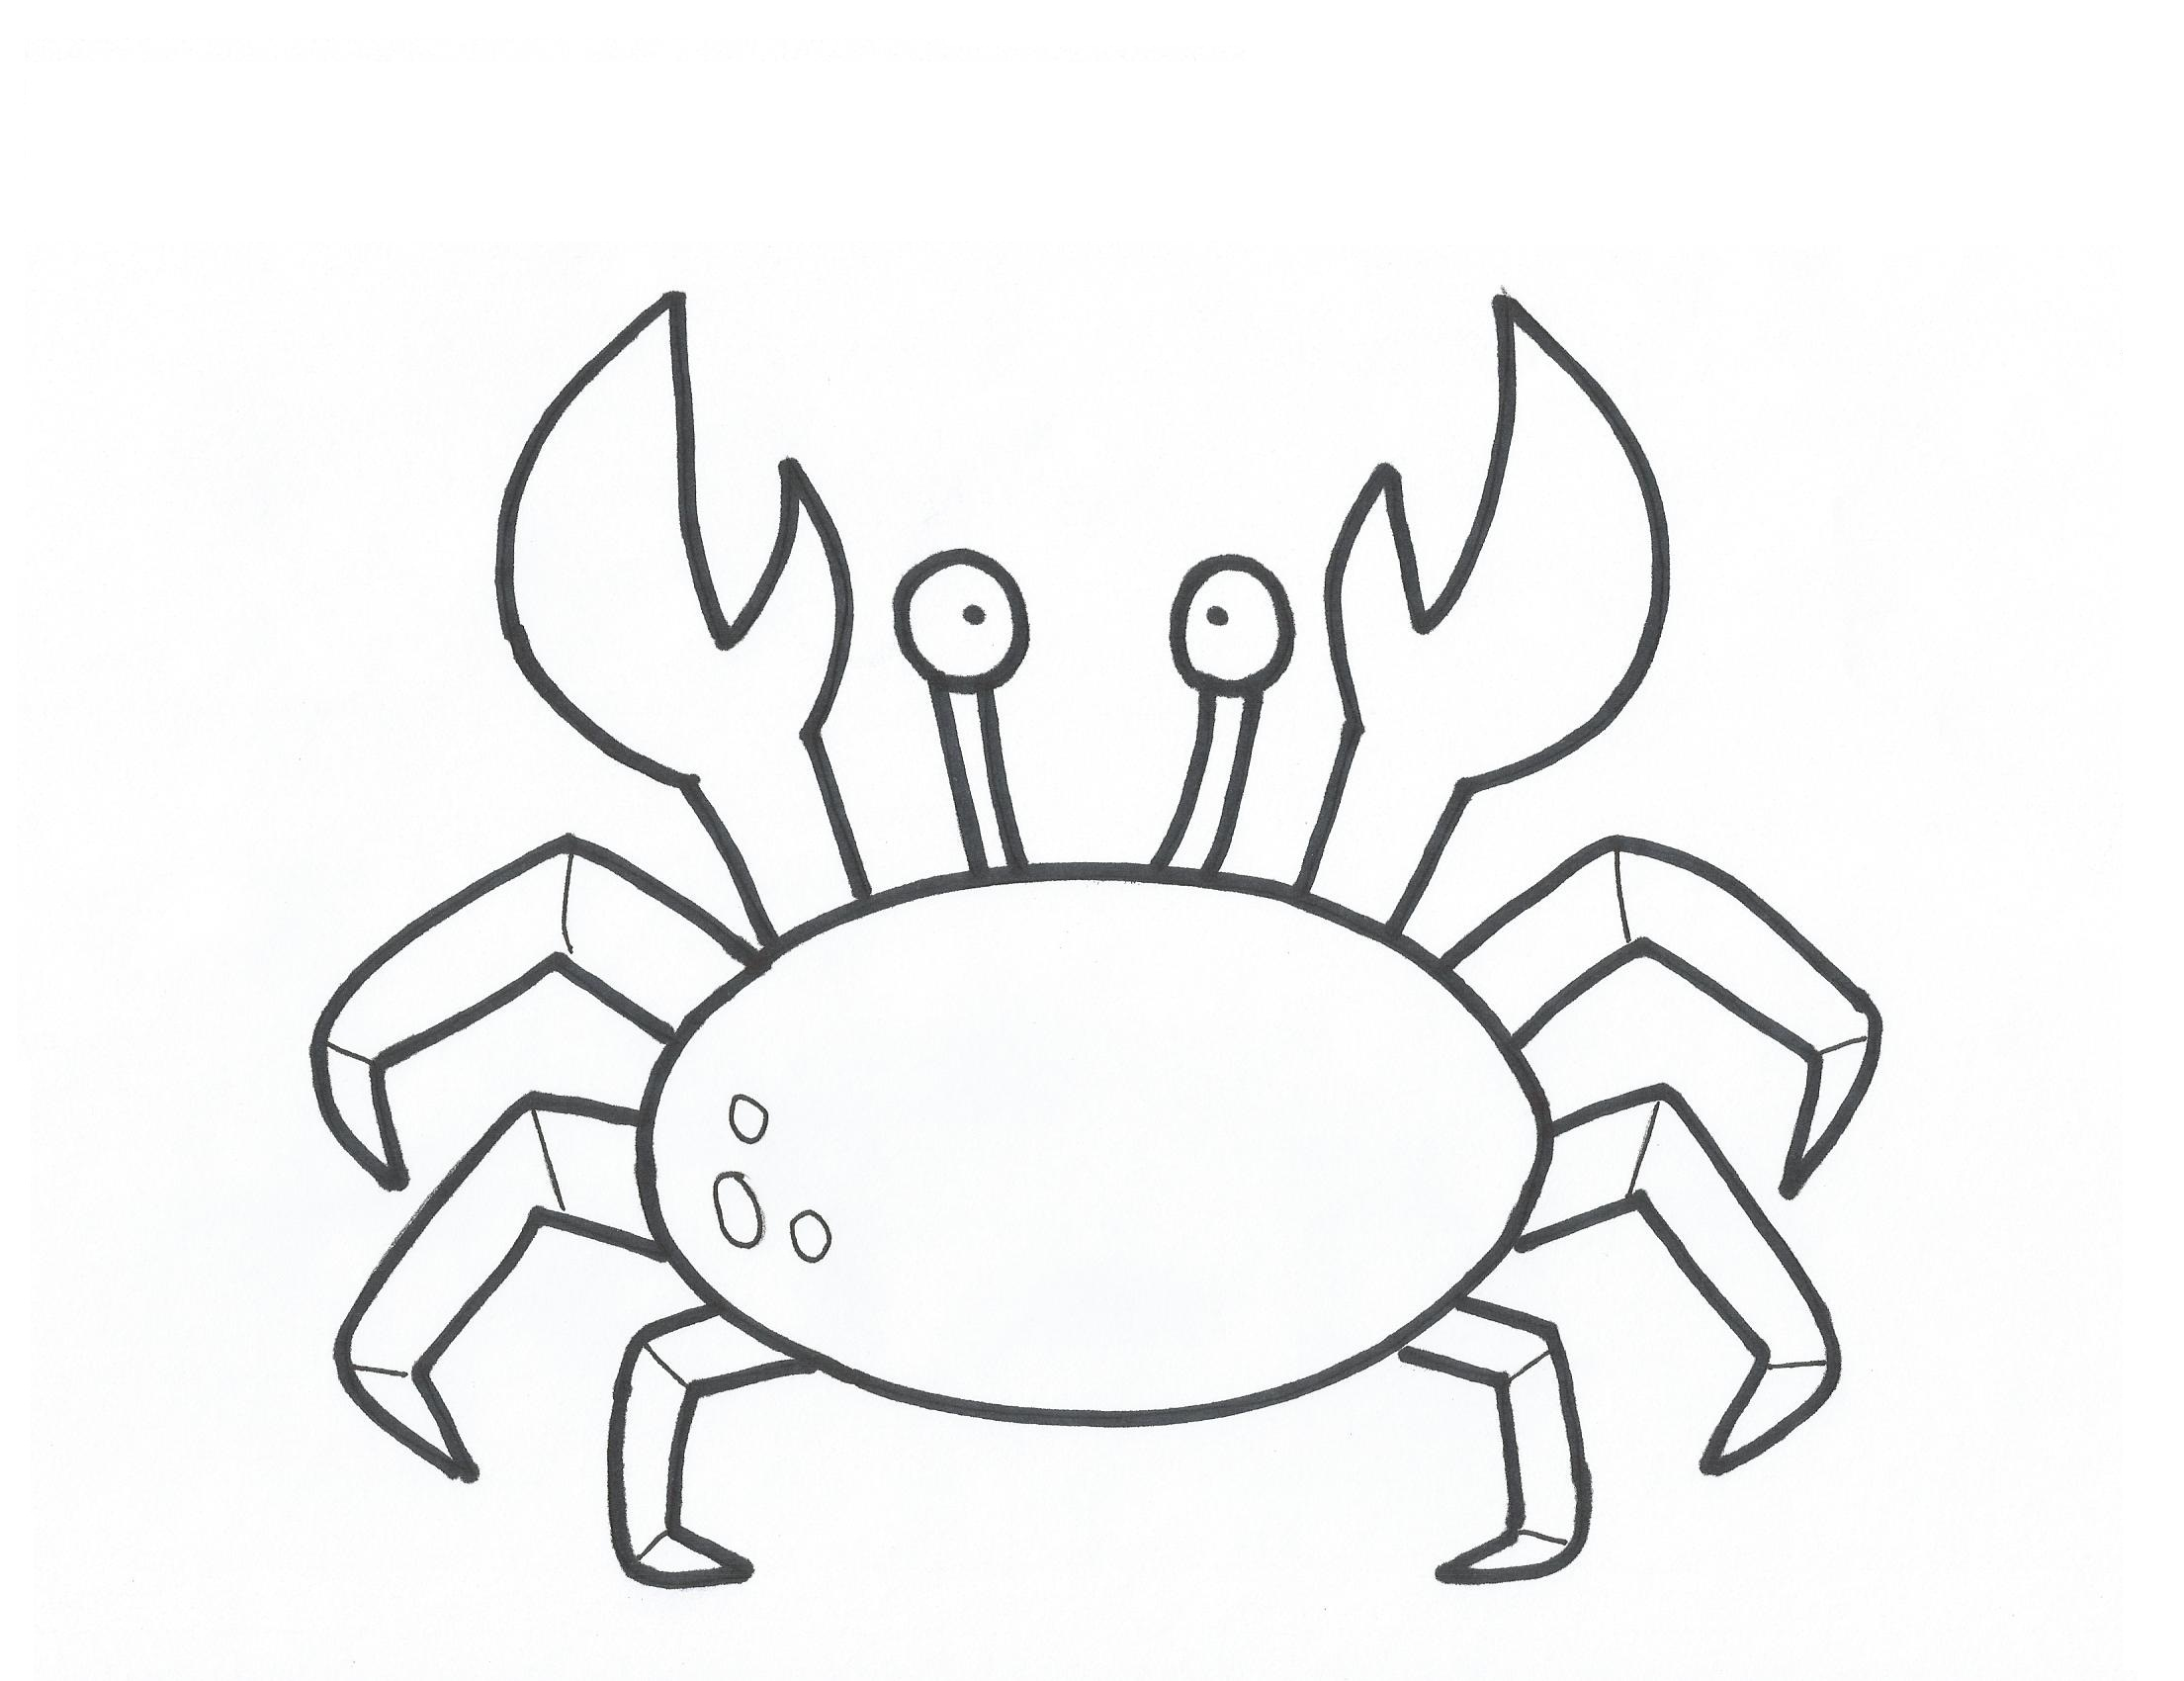 Crab picture coloring page